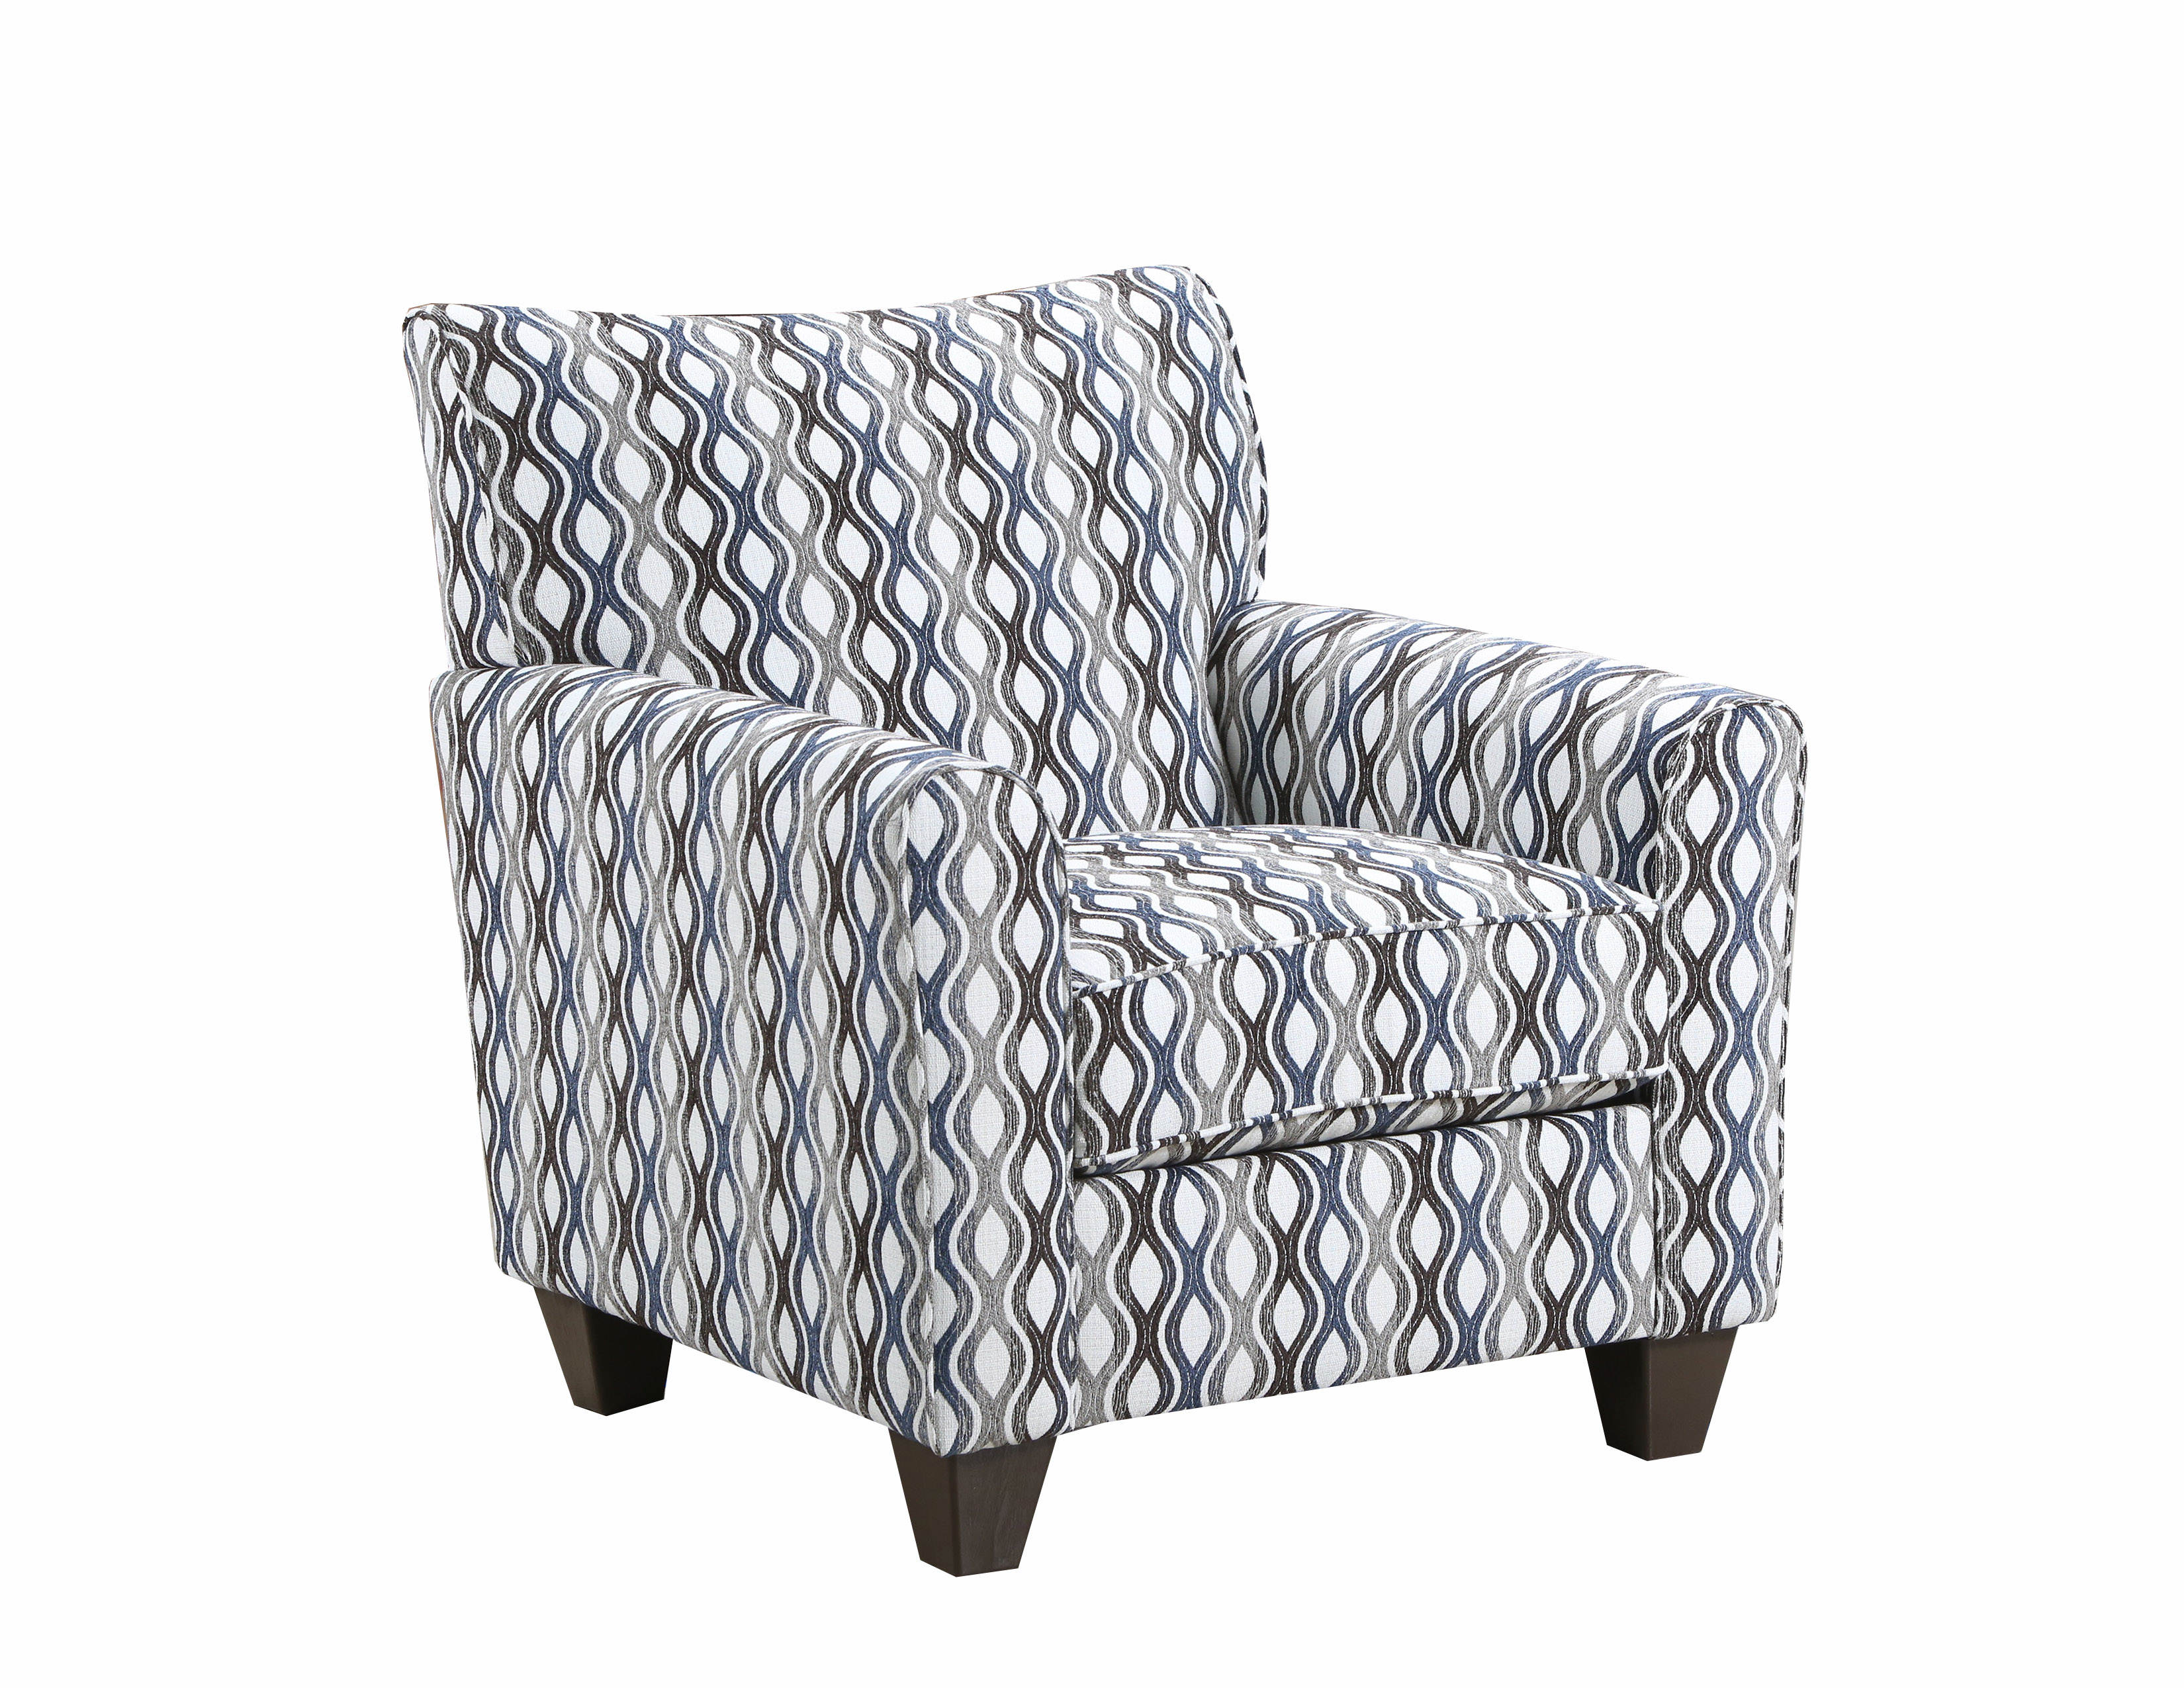 Remarkable United Furniture Simmons Denim Rialto Accent Chair Gmtry Best Dining Table And Chair Ideas Images Gmtryco